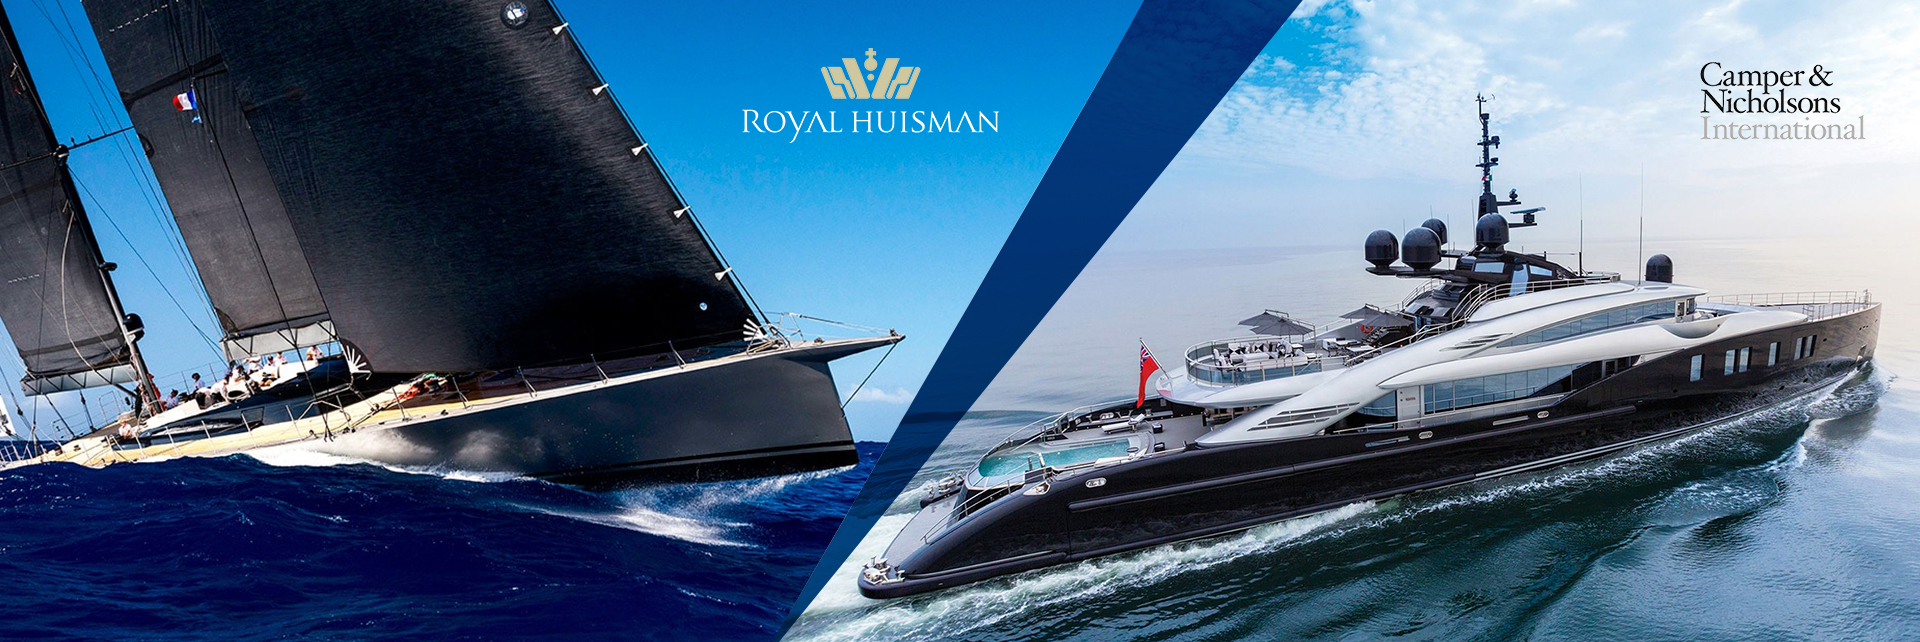 Camper & Nicholsons and Royal Huisman